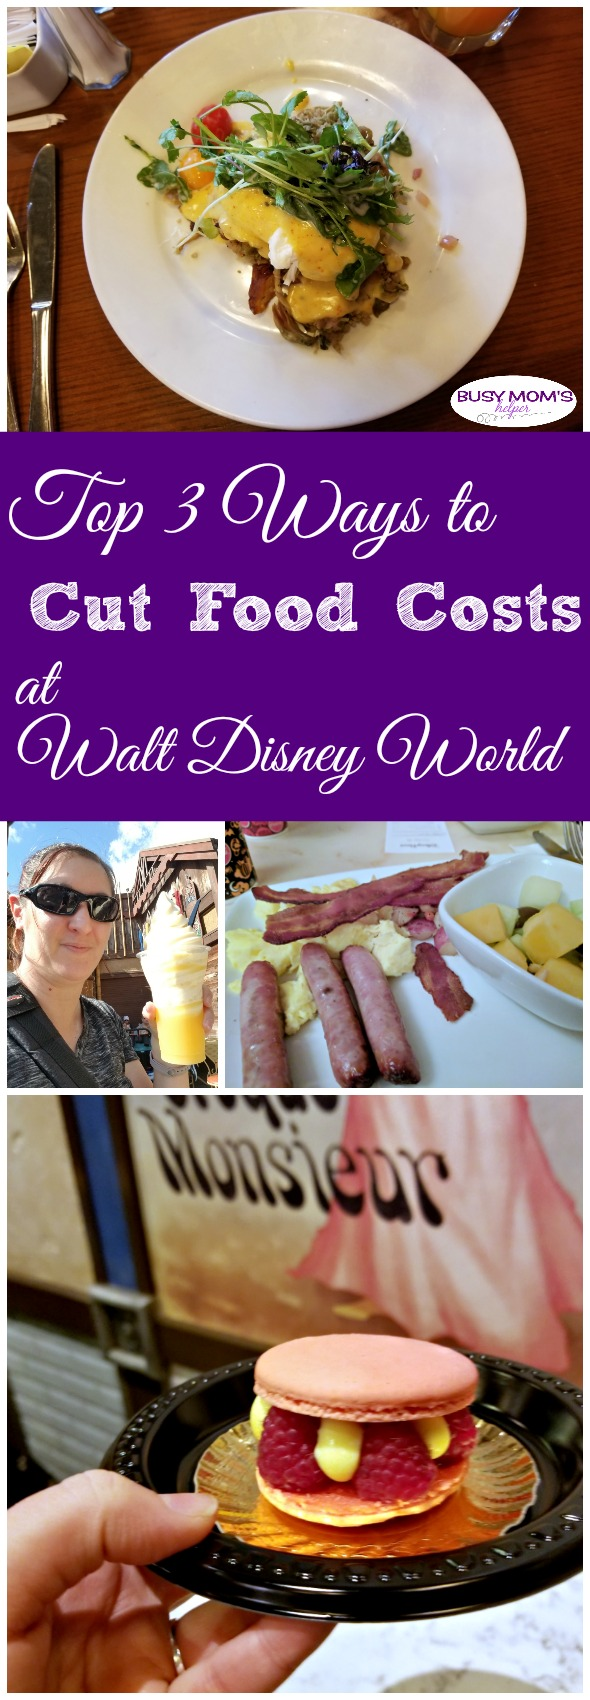 Top Tips to Cut Costs on Food at Walt Disney World - great ways to save money at Disney World! #wdw #waltdisneyworld #money #savingmoney #travel #familytravel #disney